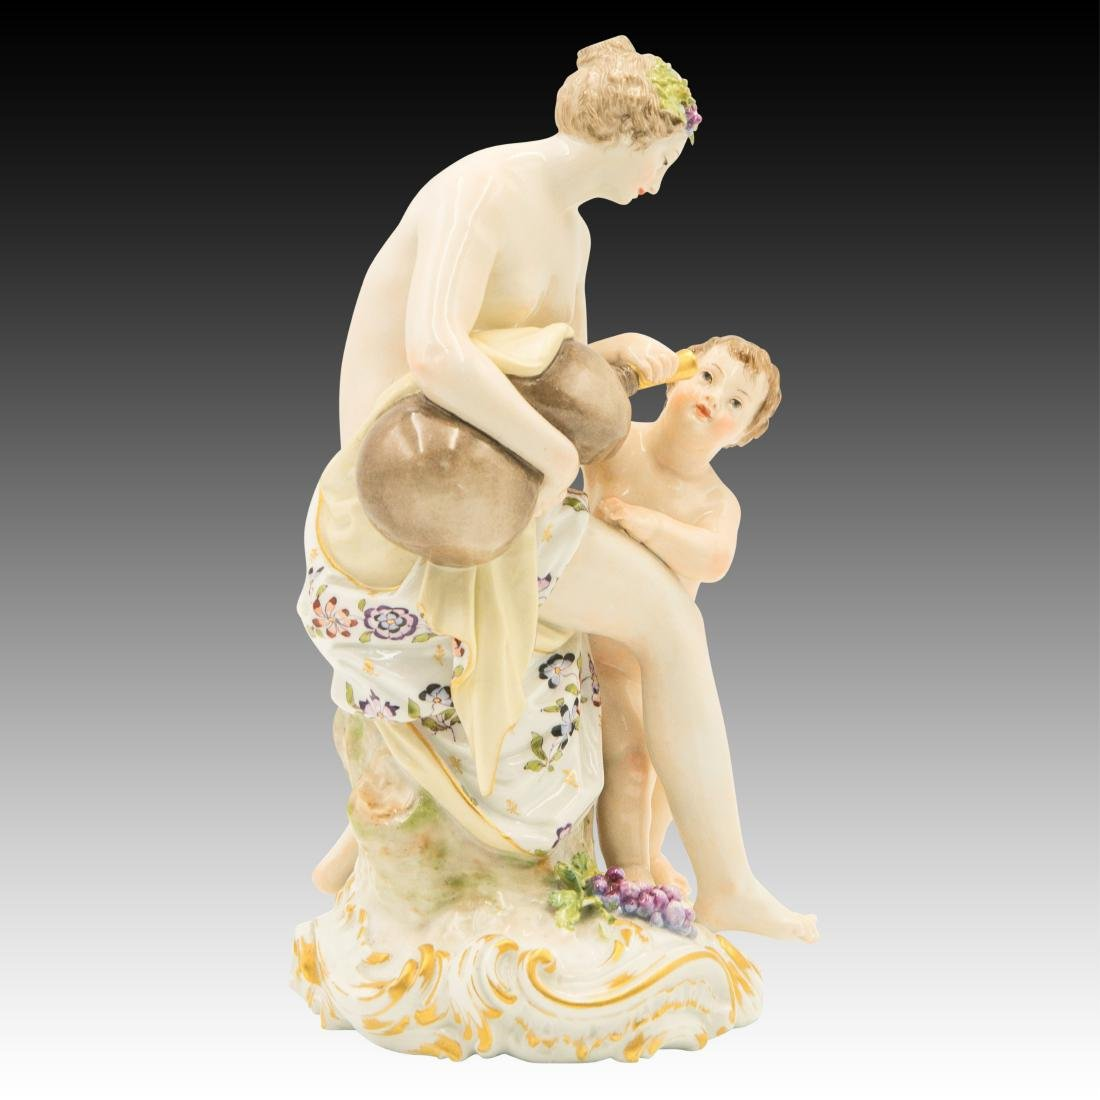 KPM Semi-nude Woman and Child Figurine - 4